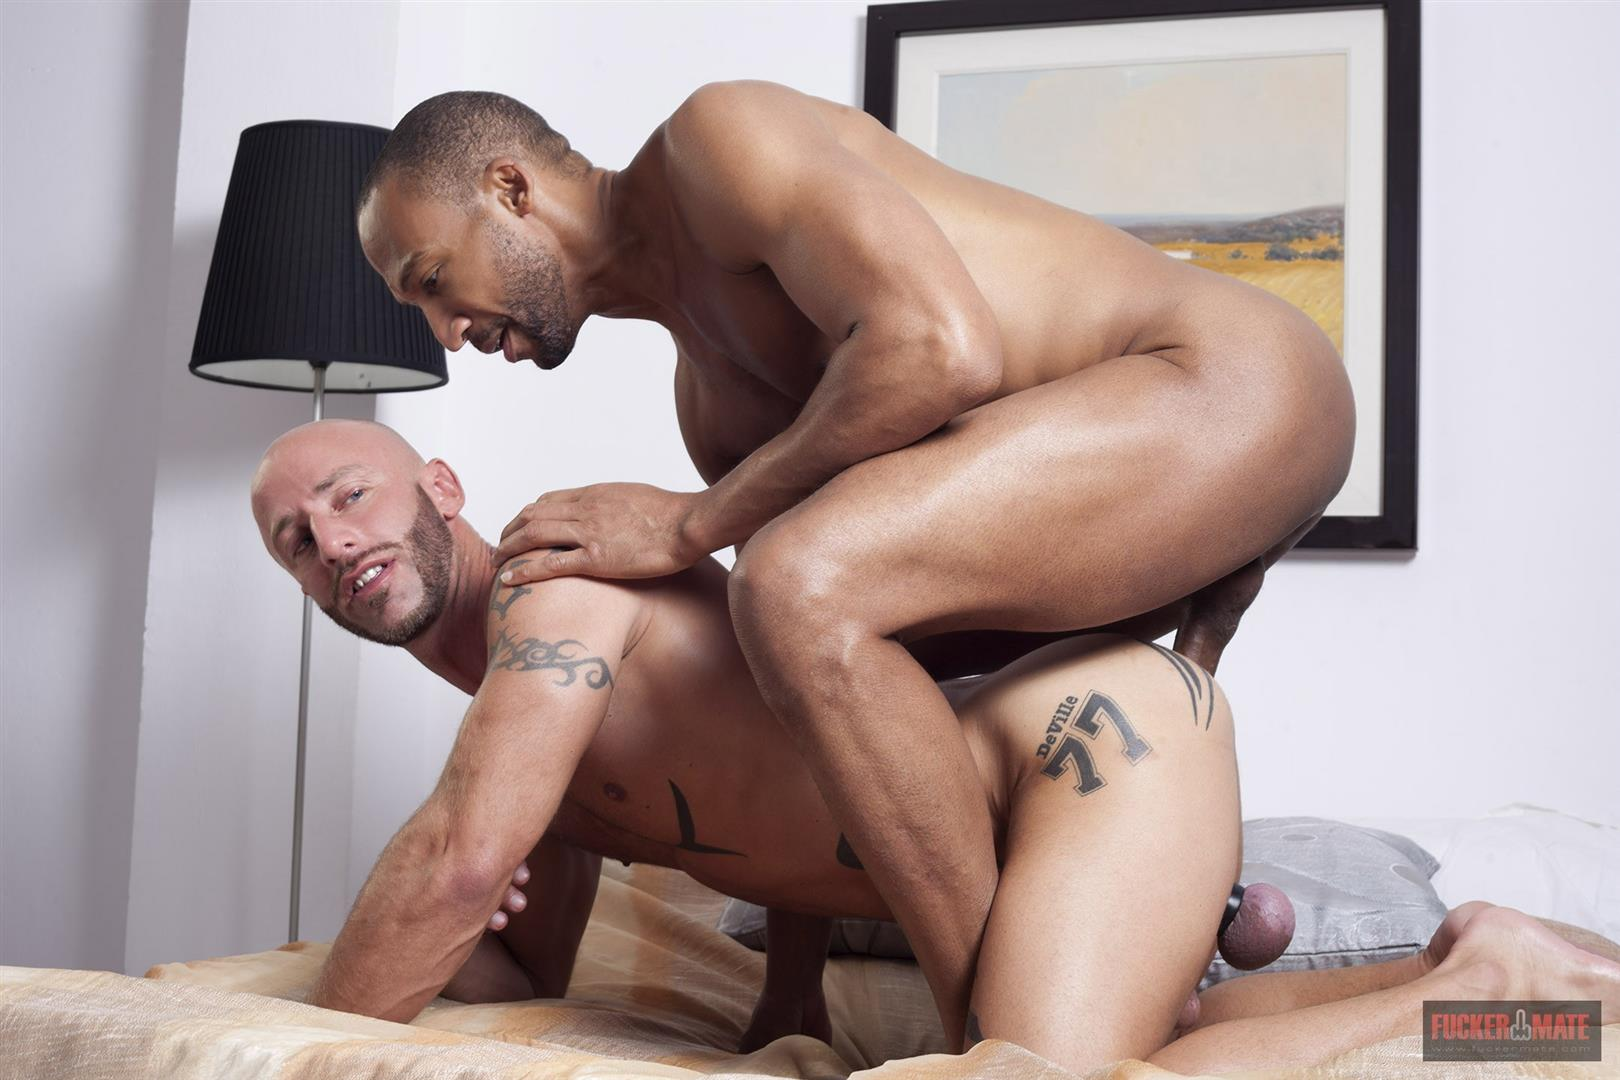 Mpegs interracial fuck